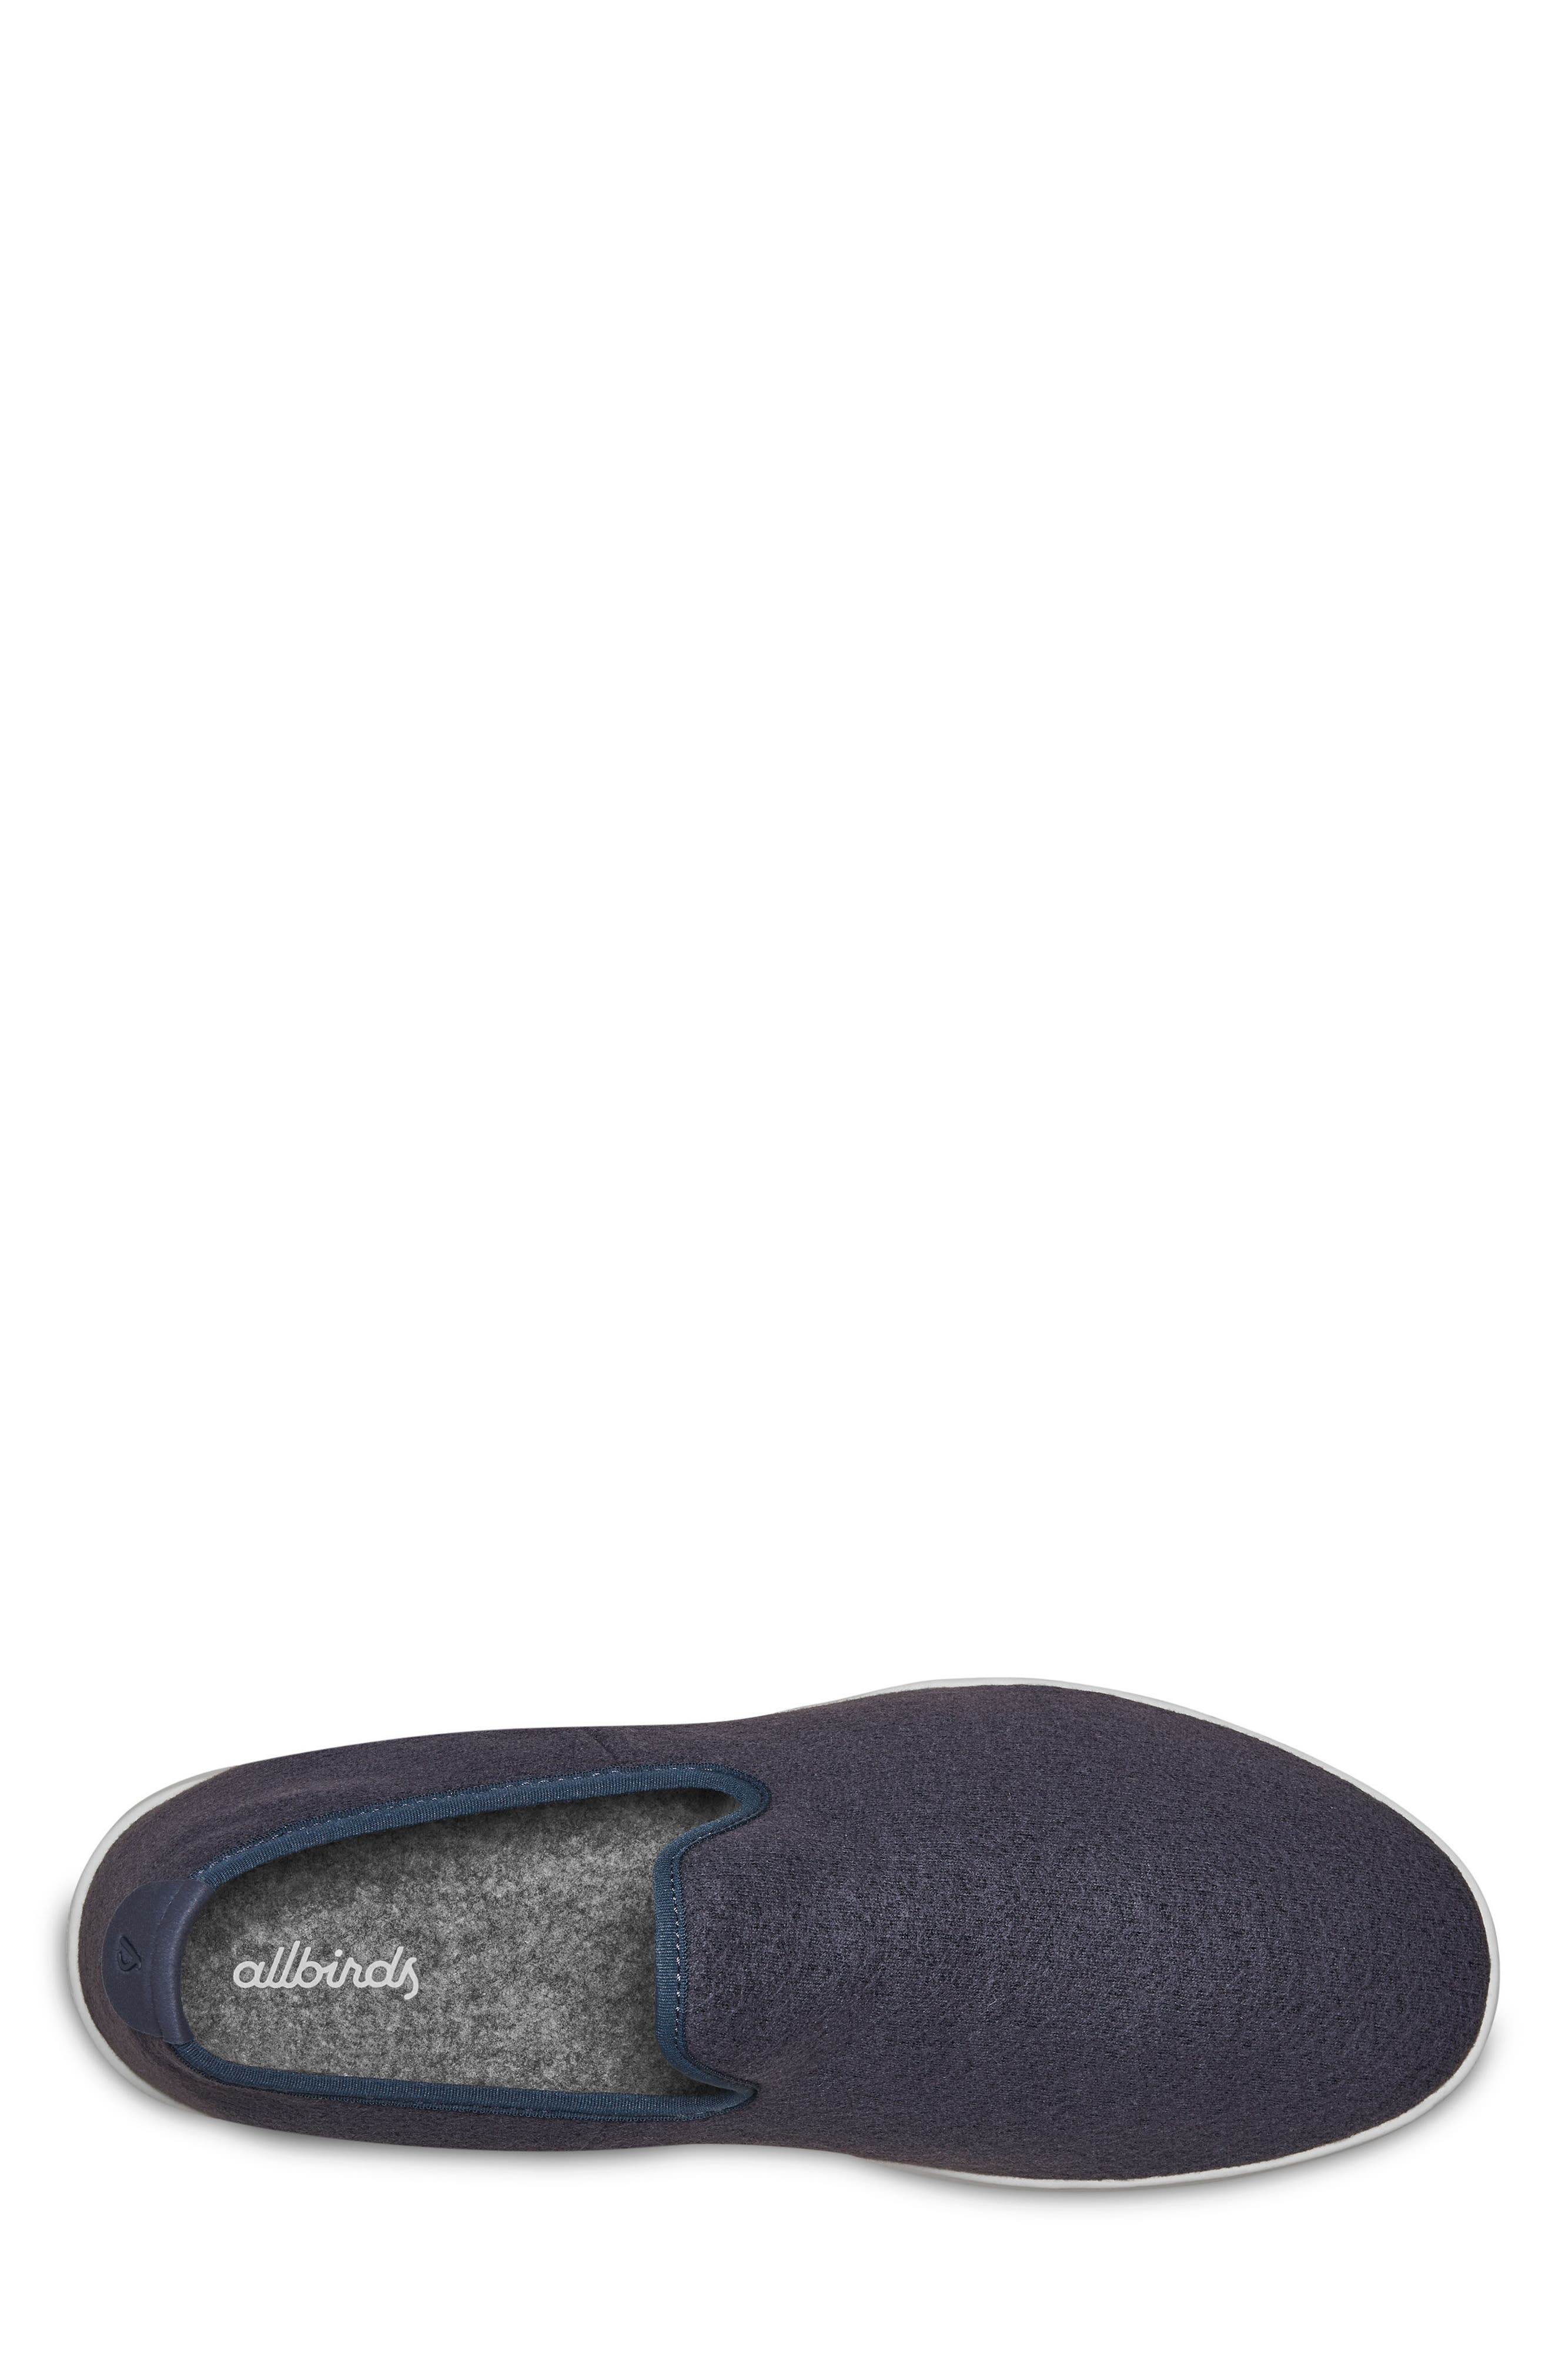 Wool Lounger,                             Alternate thumbnail 4, color,                             Midnight